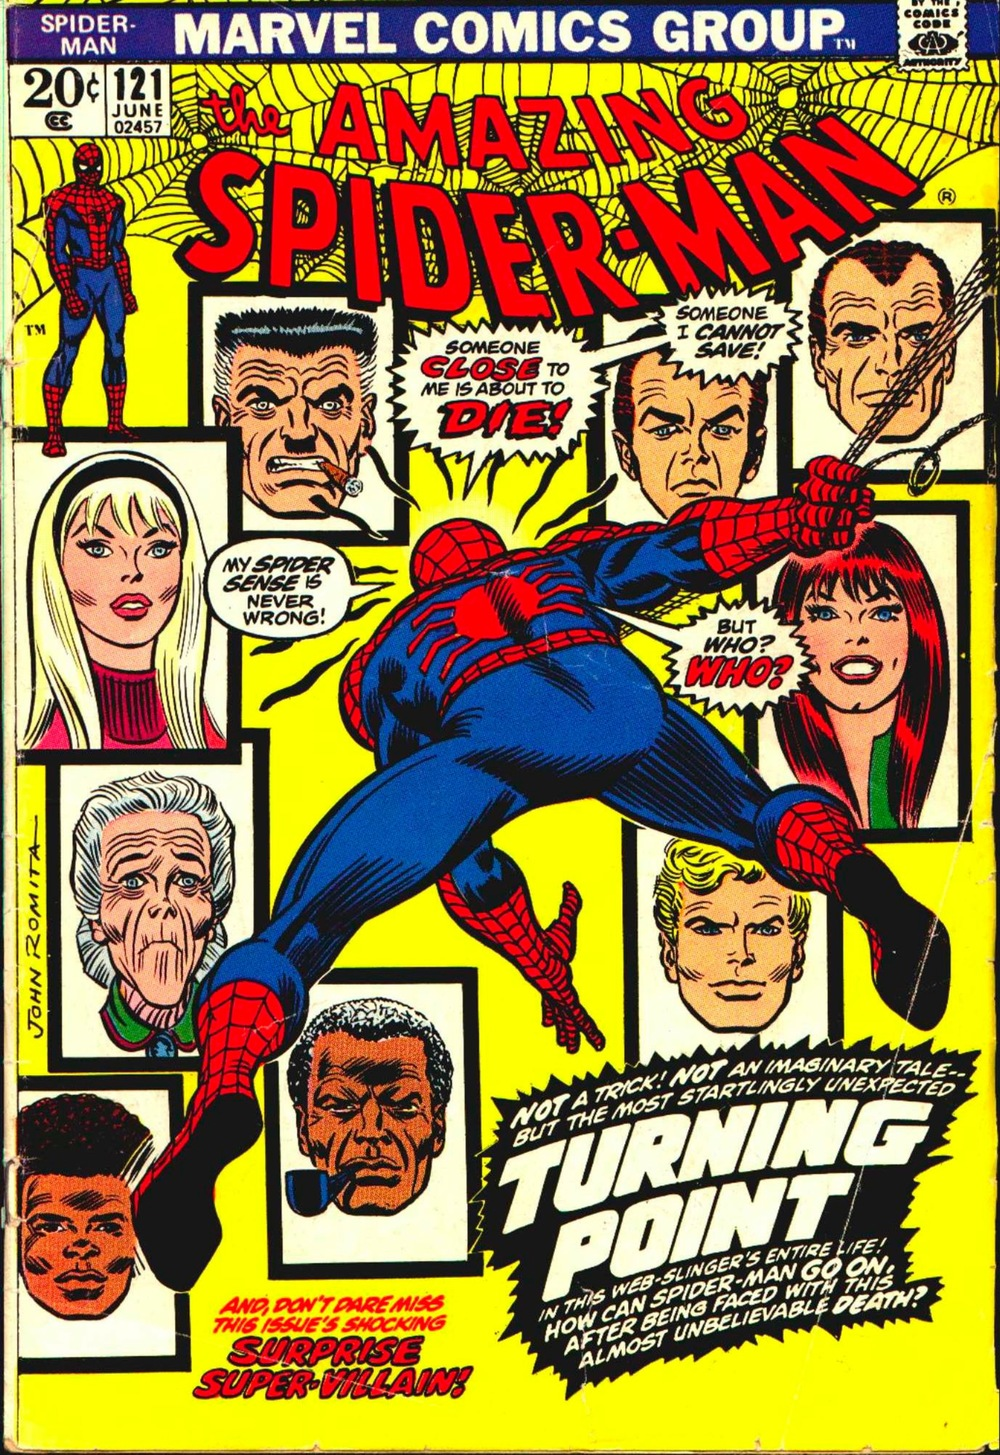 Amazing Spider-Man #121, The Night Gwen Stacy Died cover by John Romita, Sr.